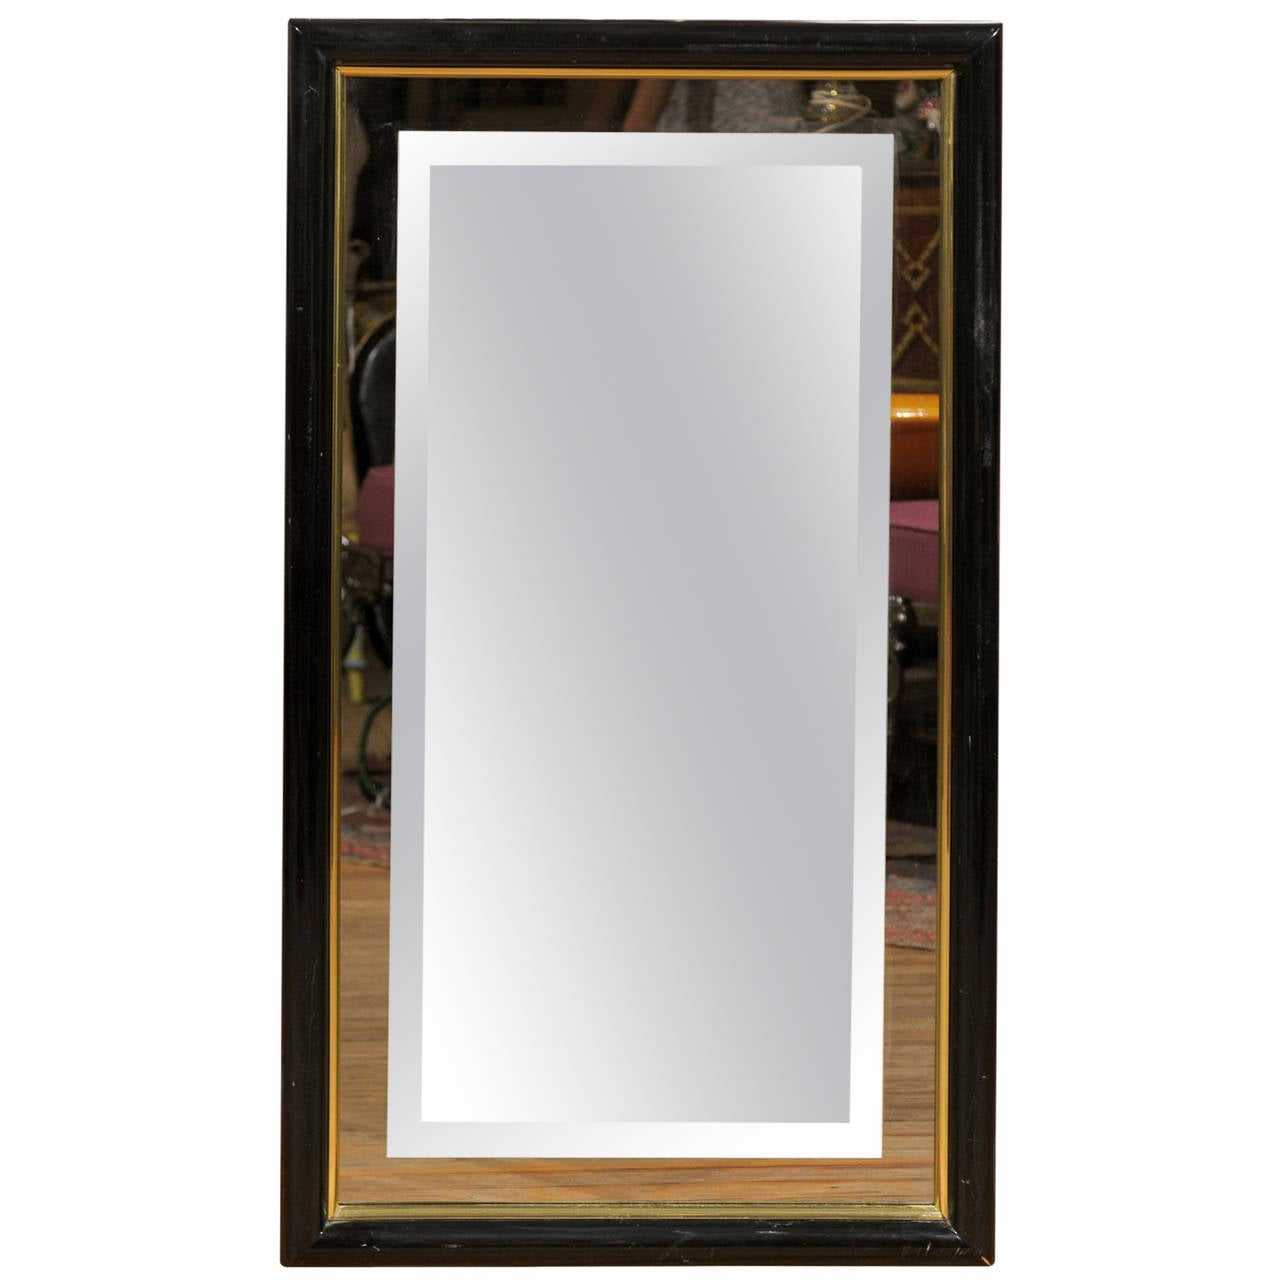 Smoked and beveled glass wall mirror in a black and brass frame smoked and beveled glass wall mirror in a black and brass frame 1 amipublicfo Choice Image